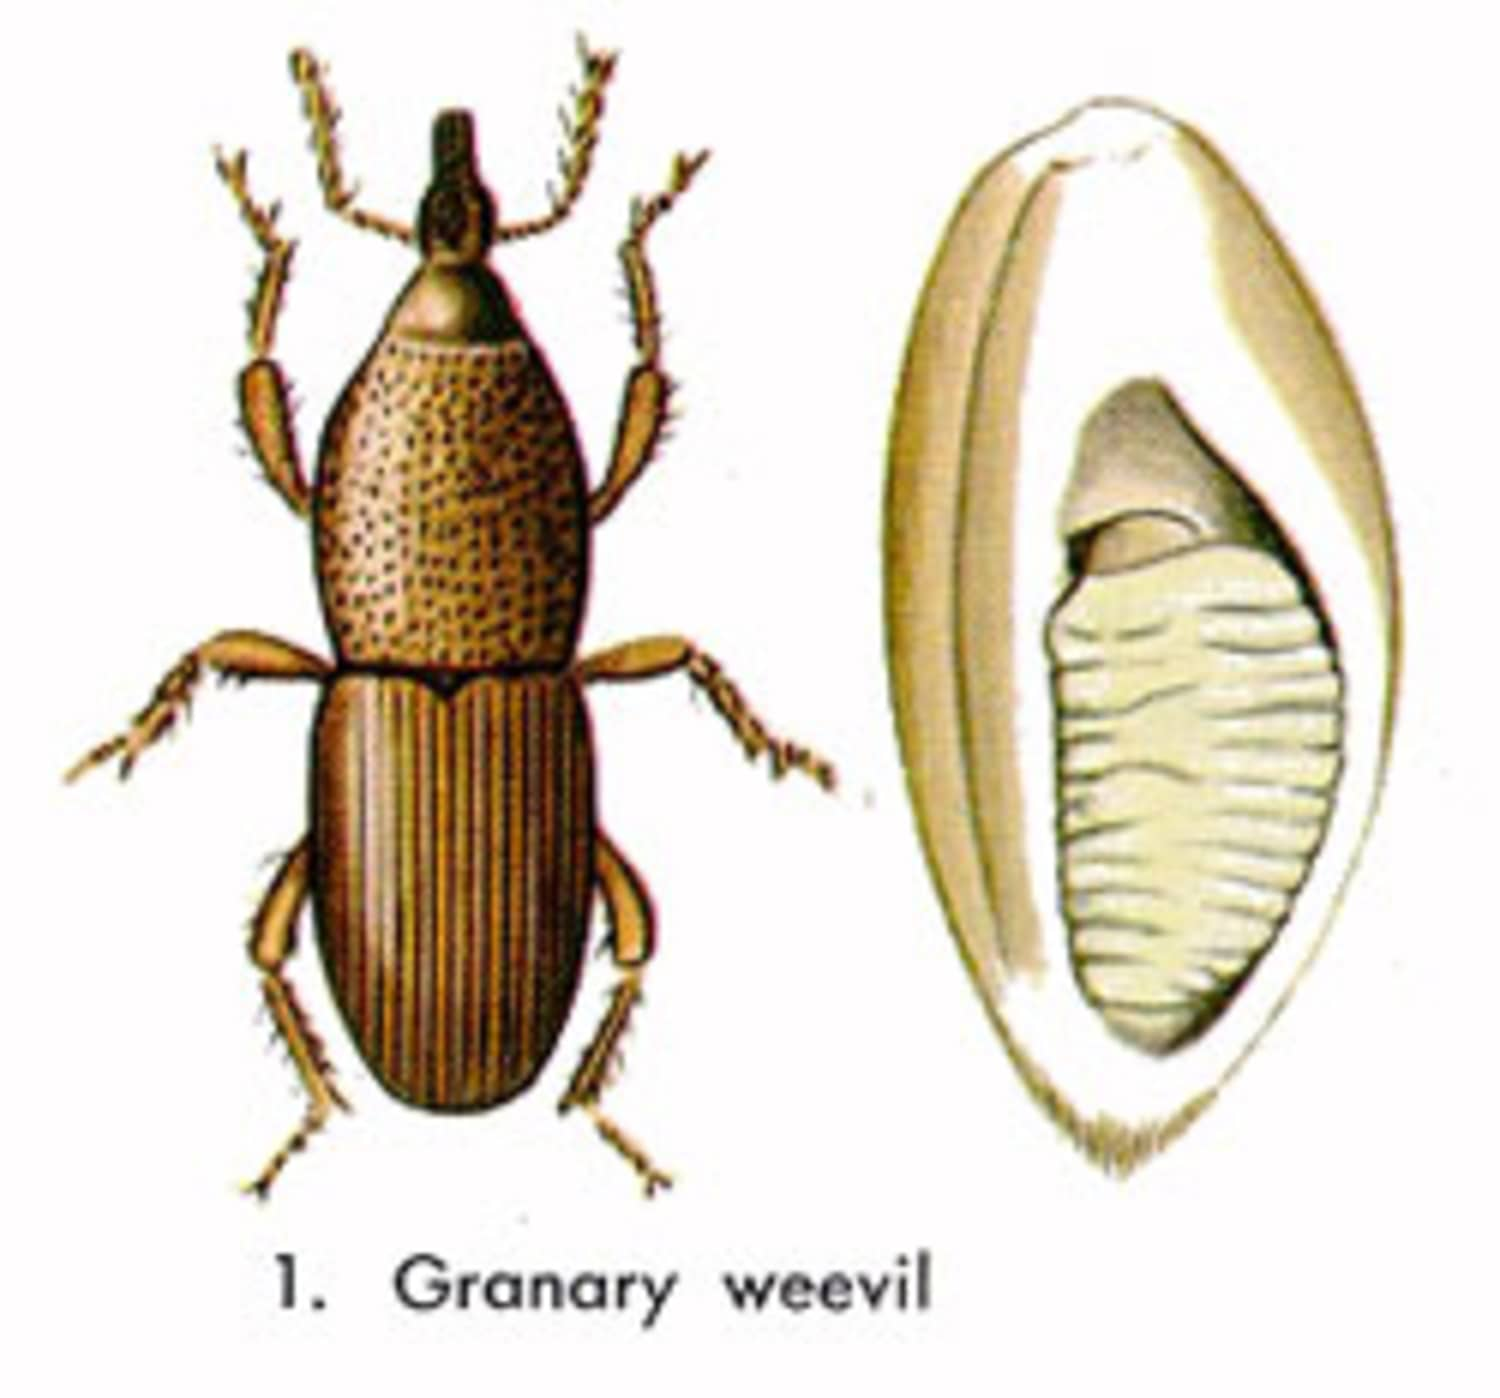 How To Prevent & Get Rid of Grain Weevils